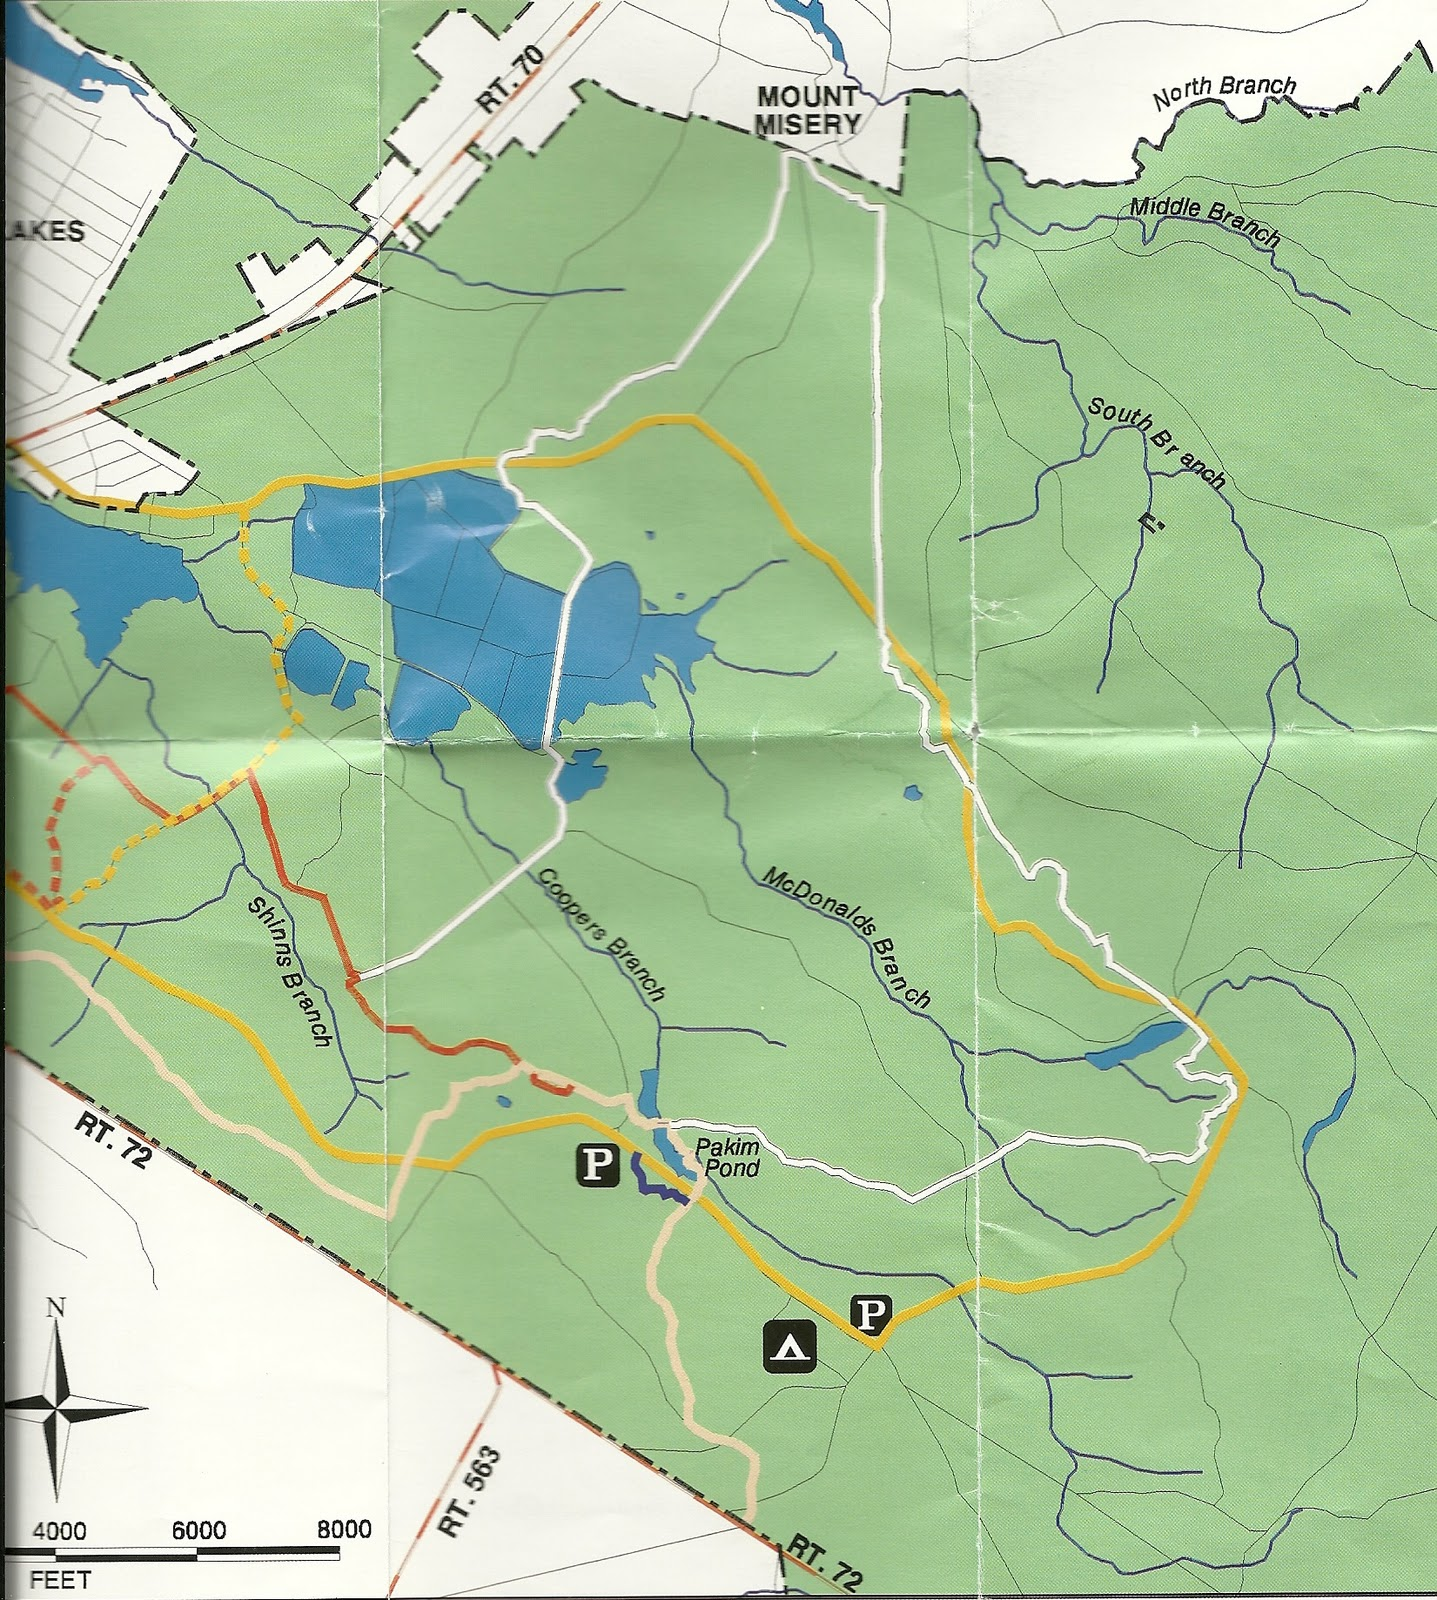 the yellow trail on the map which shown as a bike trail is actually thesame as a paved road (shinns road) which goes through the park. gone hikin' brendan t byrne state forest nj  mt misery trail